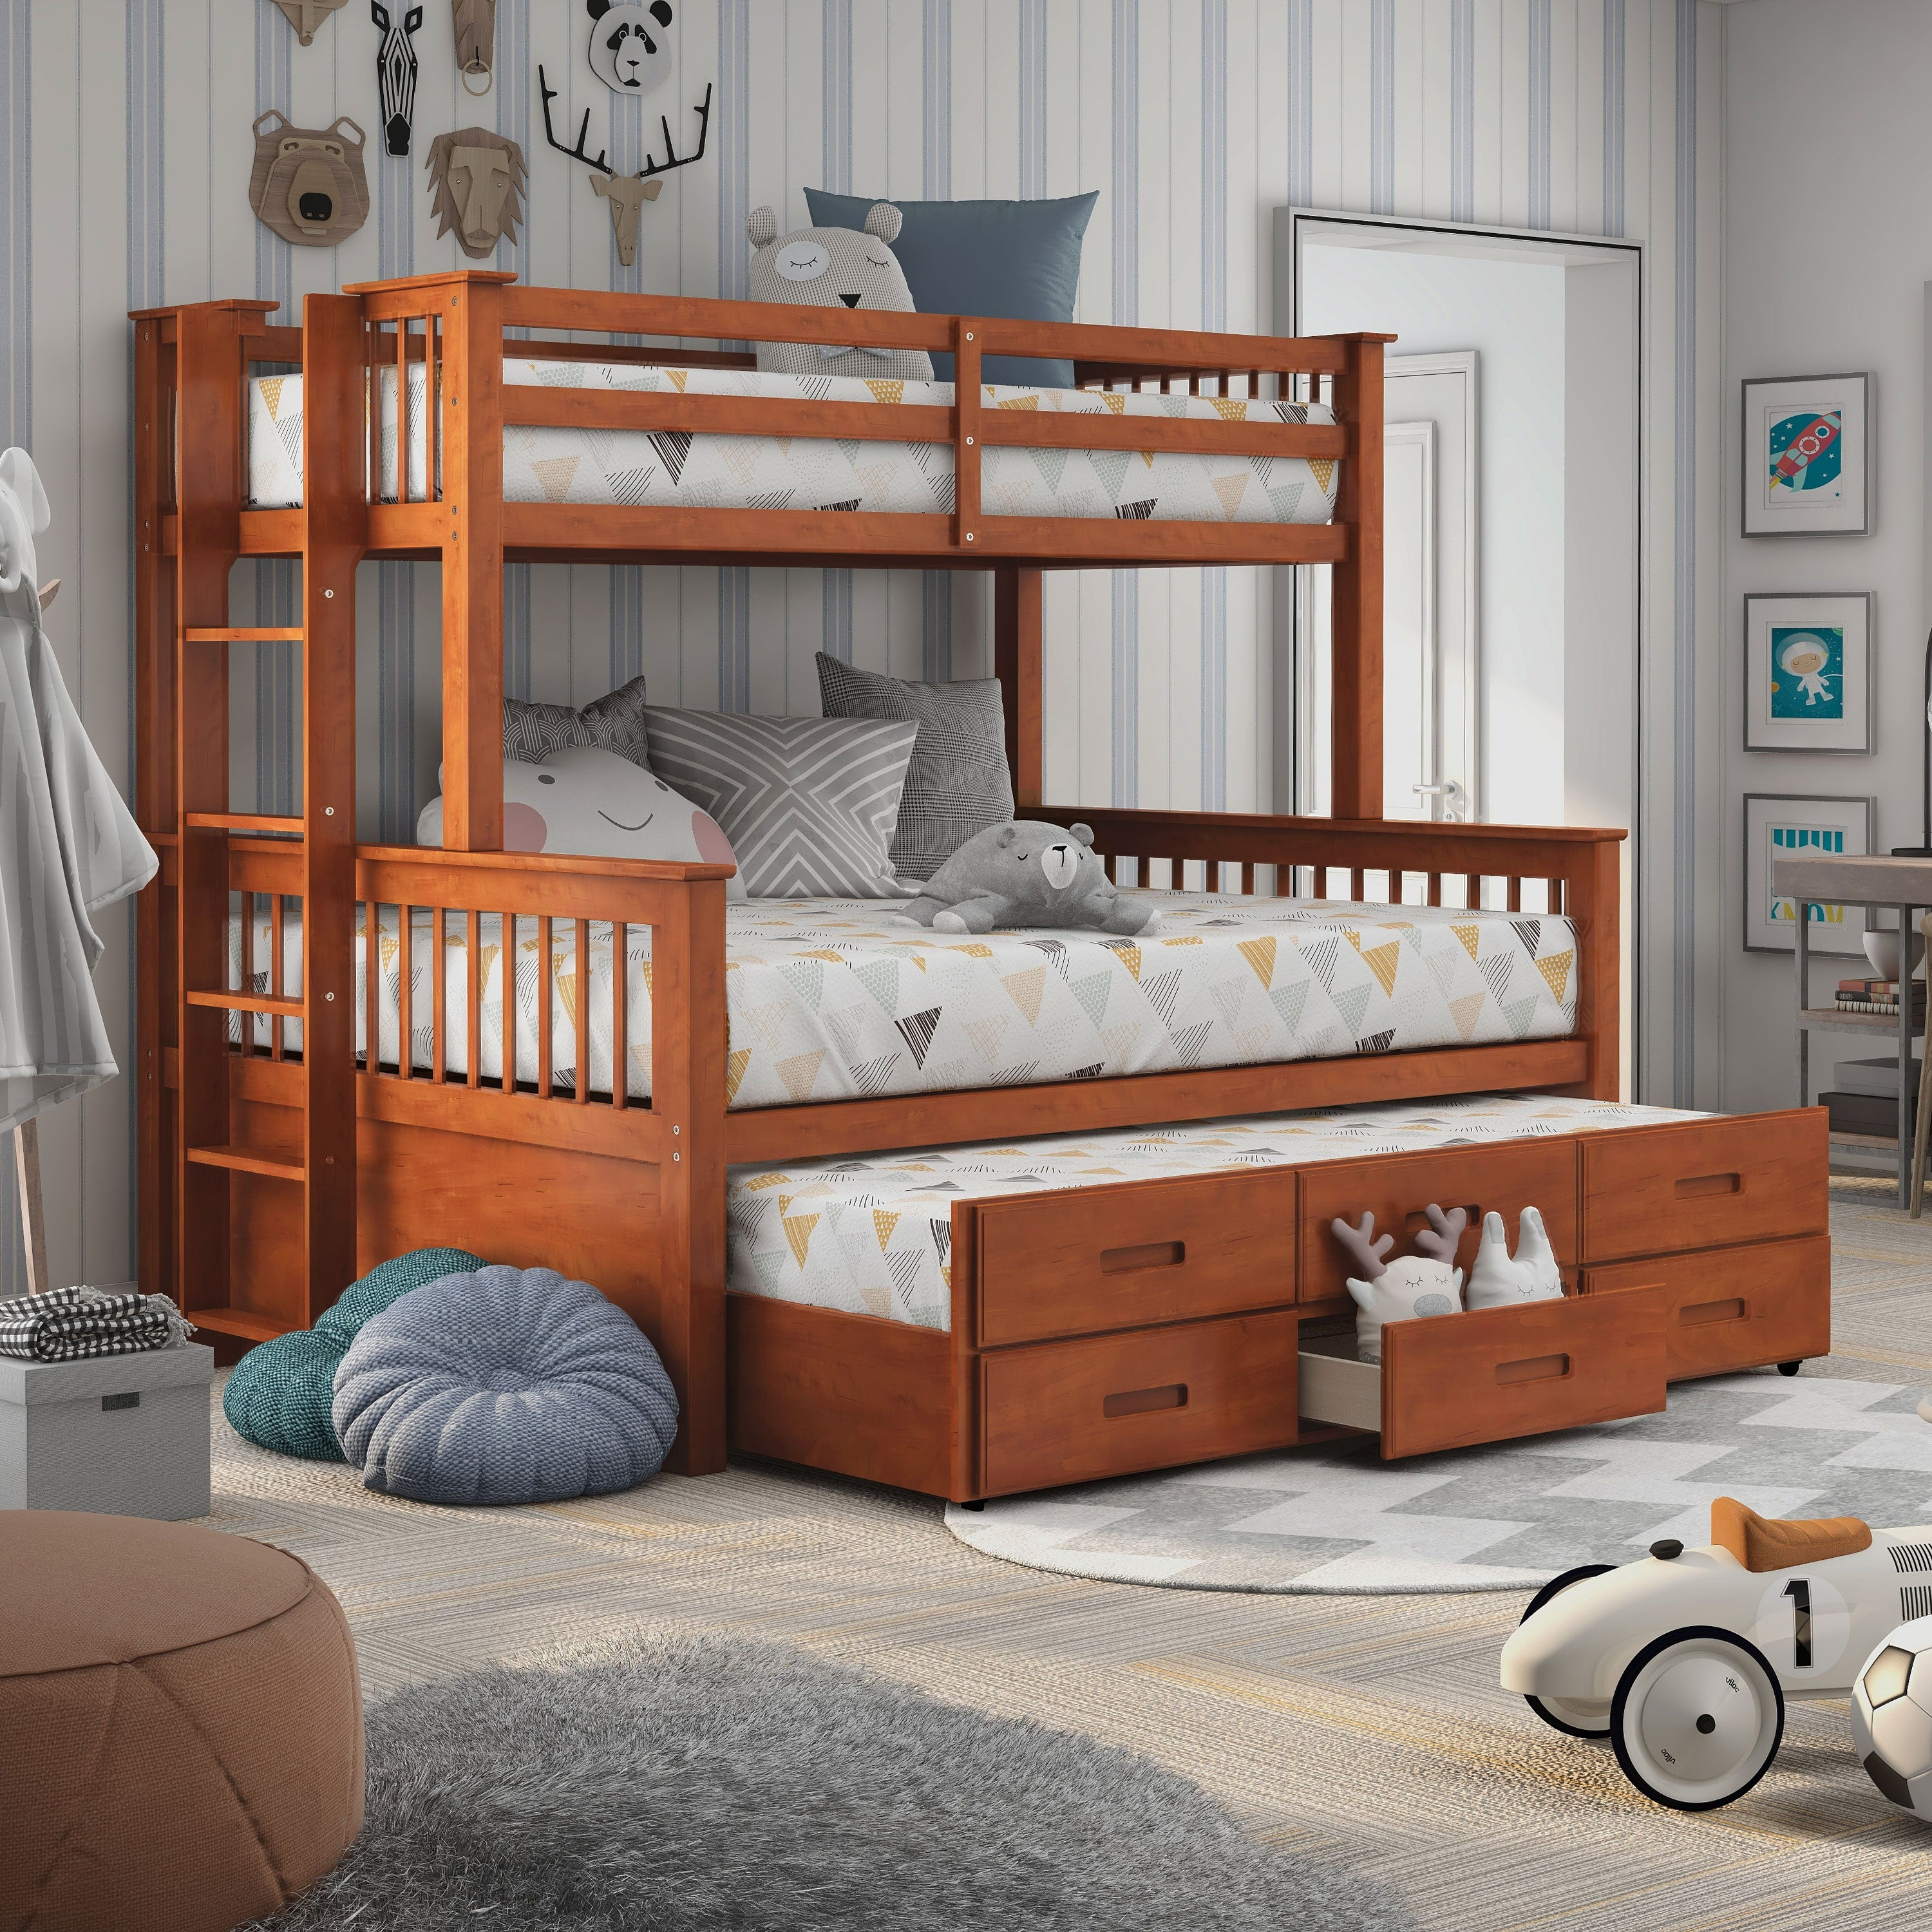 Furniture Of America Rola Mission Twin Xl Queen Bunk Bed Overstock 10302777